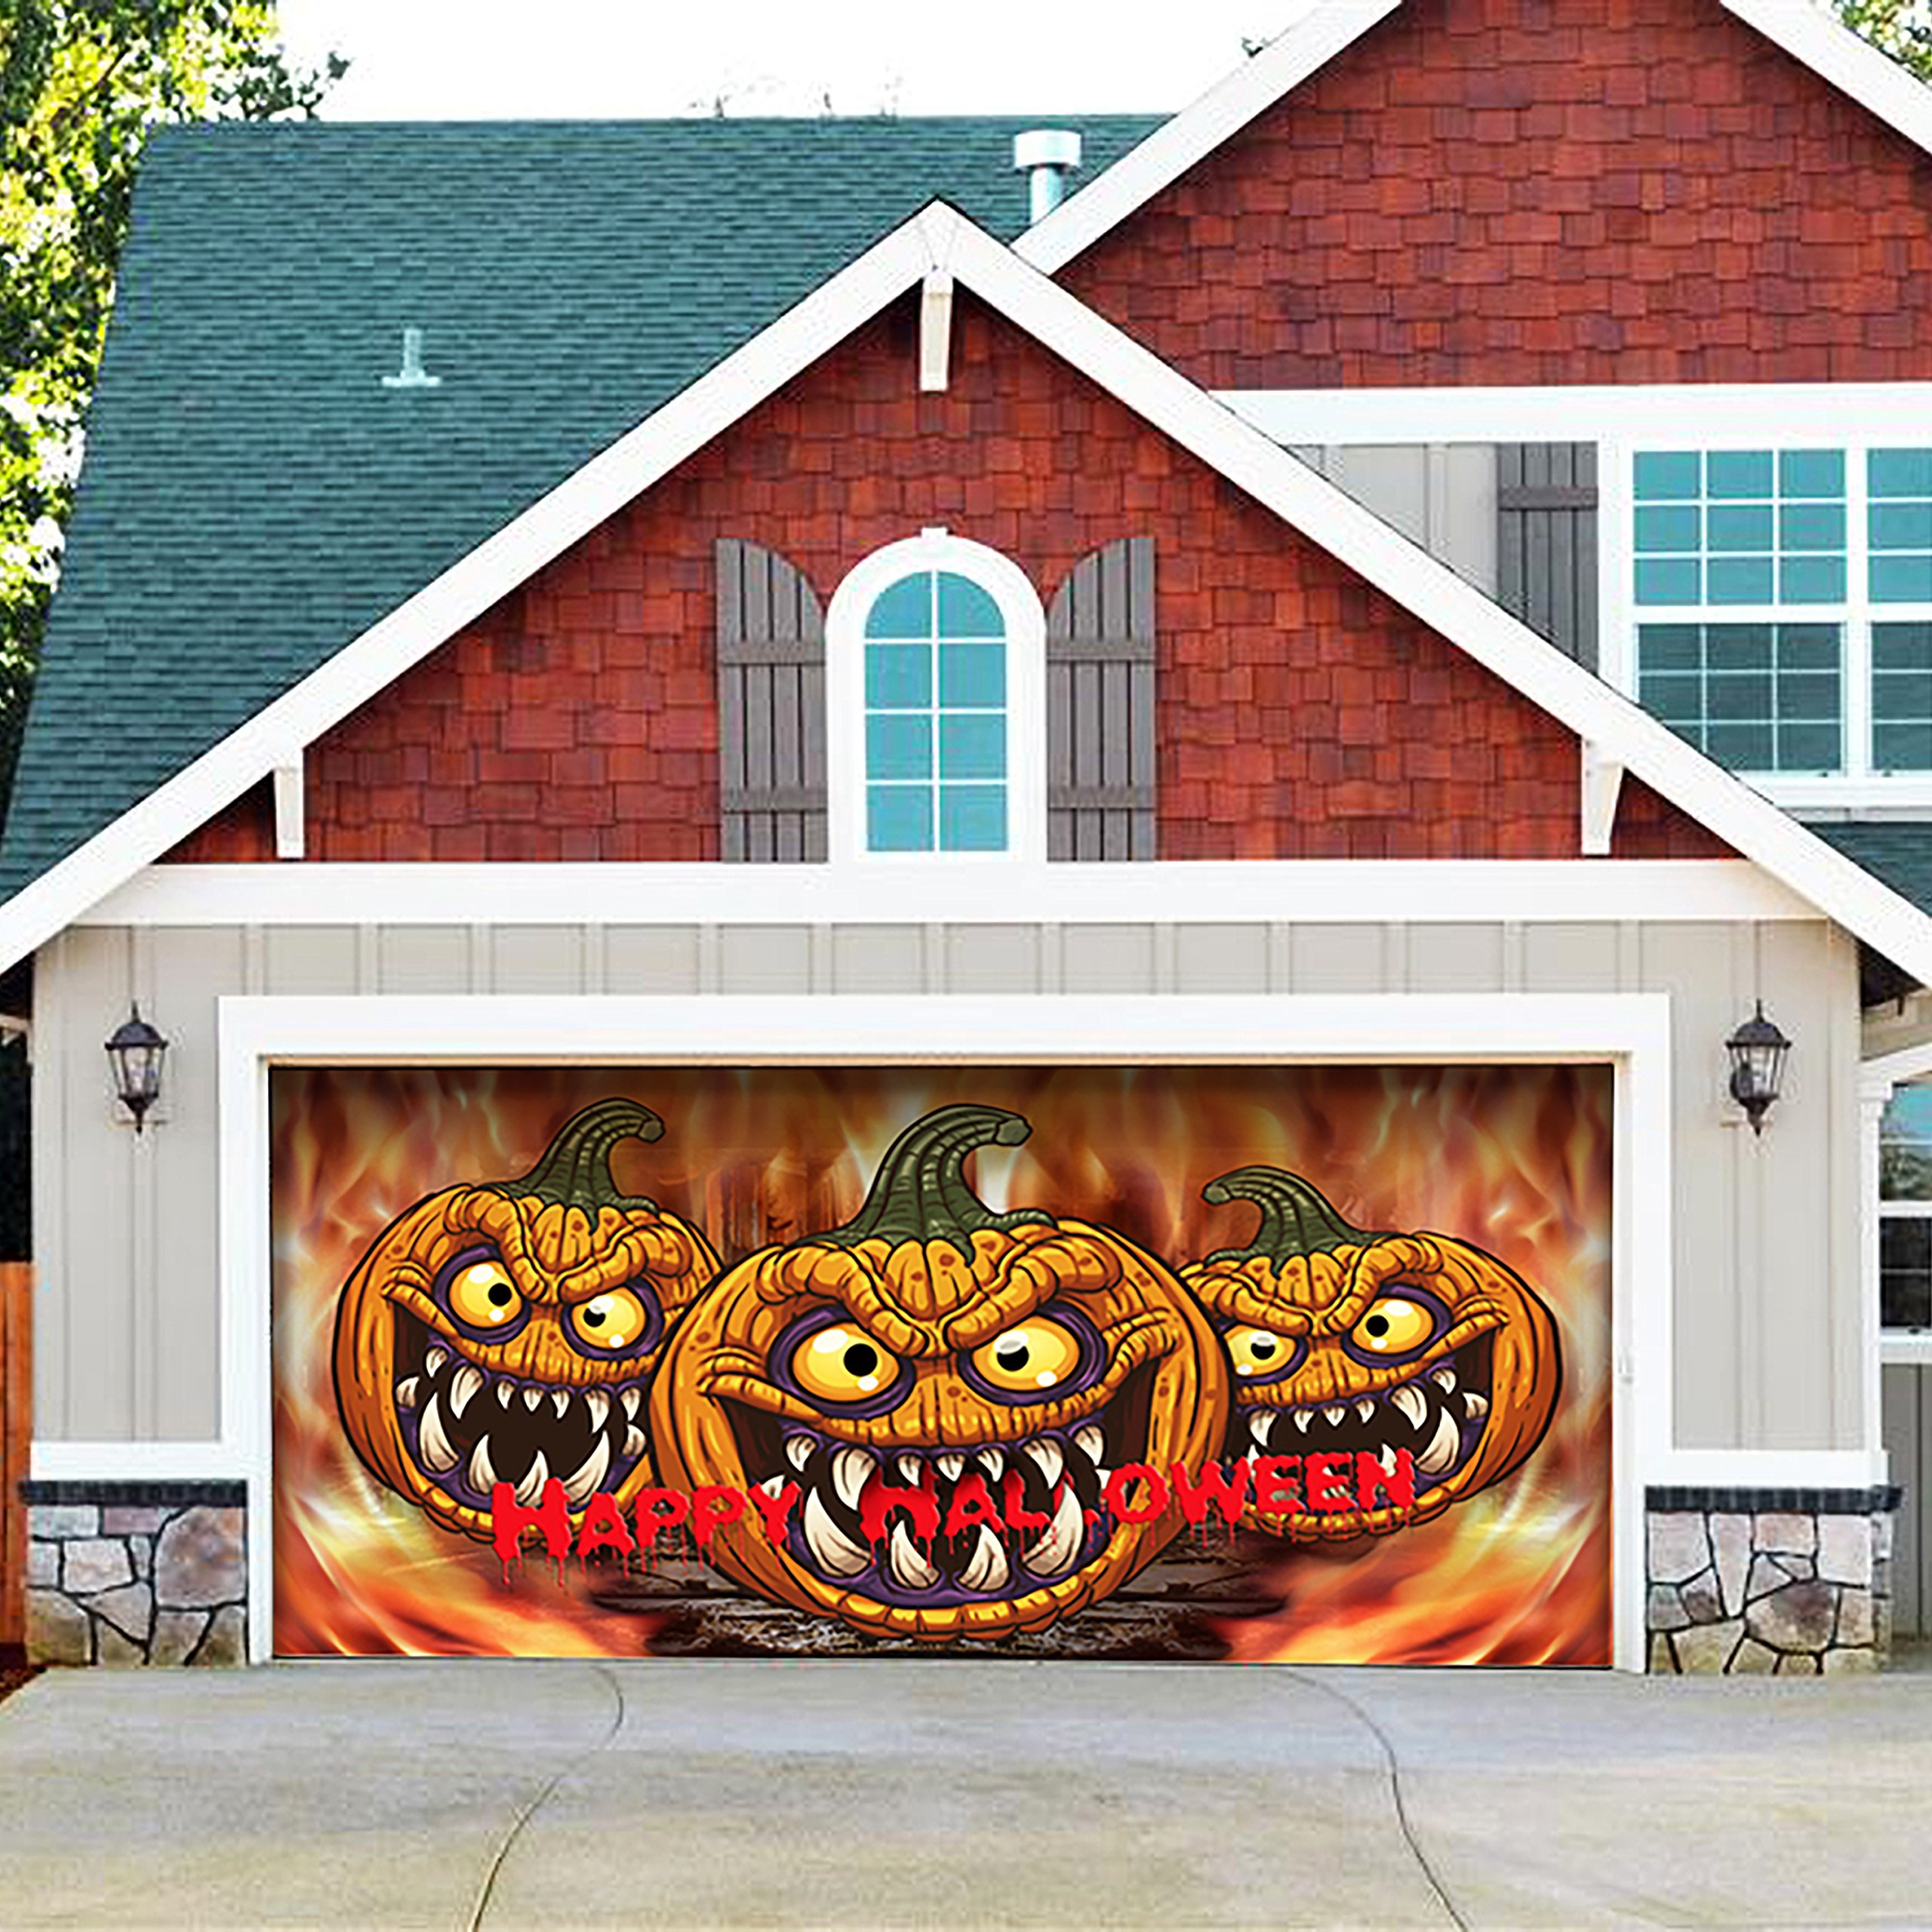 Victory Corps Outdoor Christmas Holiday Garage Door Banner Cover Mural Décoration 7'x16' - Three Scary Pumpkins Outdoor Halloween Garage Door Banner Décor Sign 7'x16'